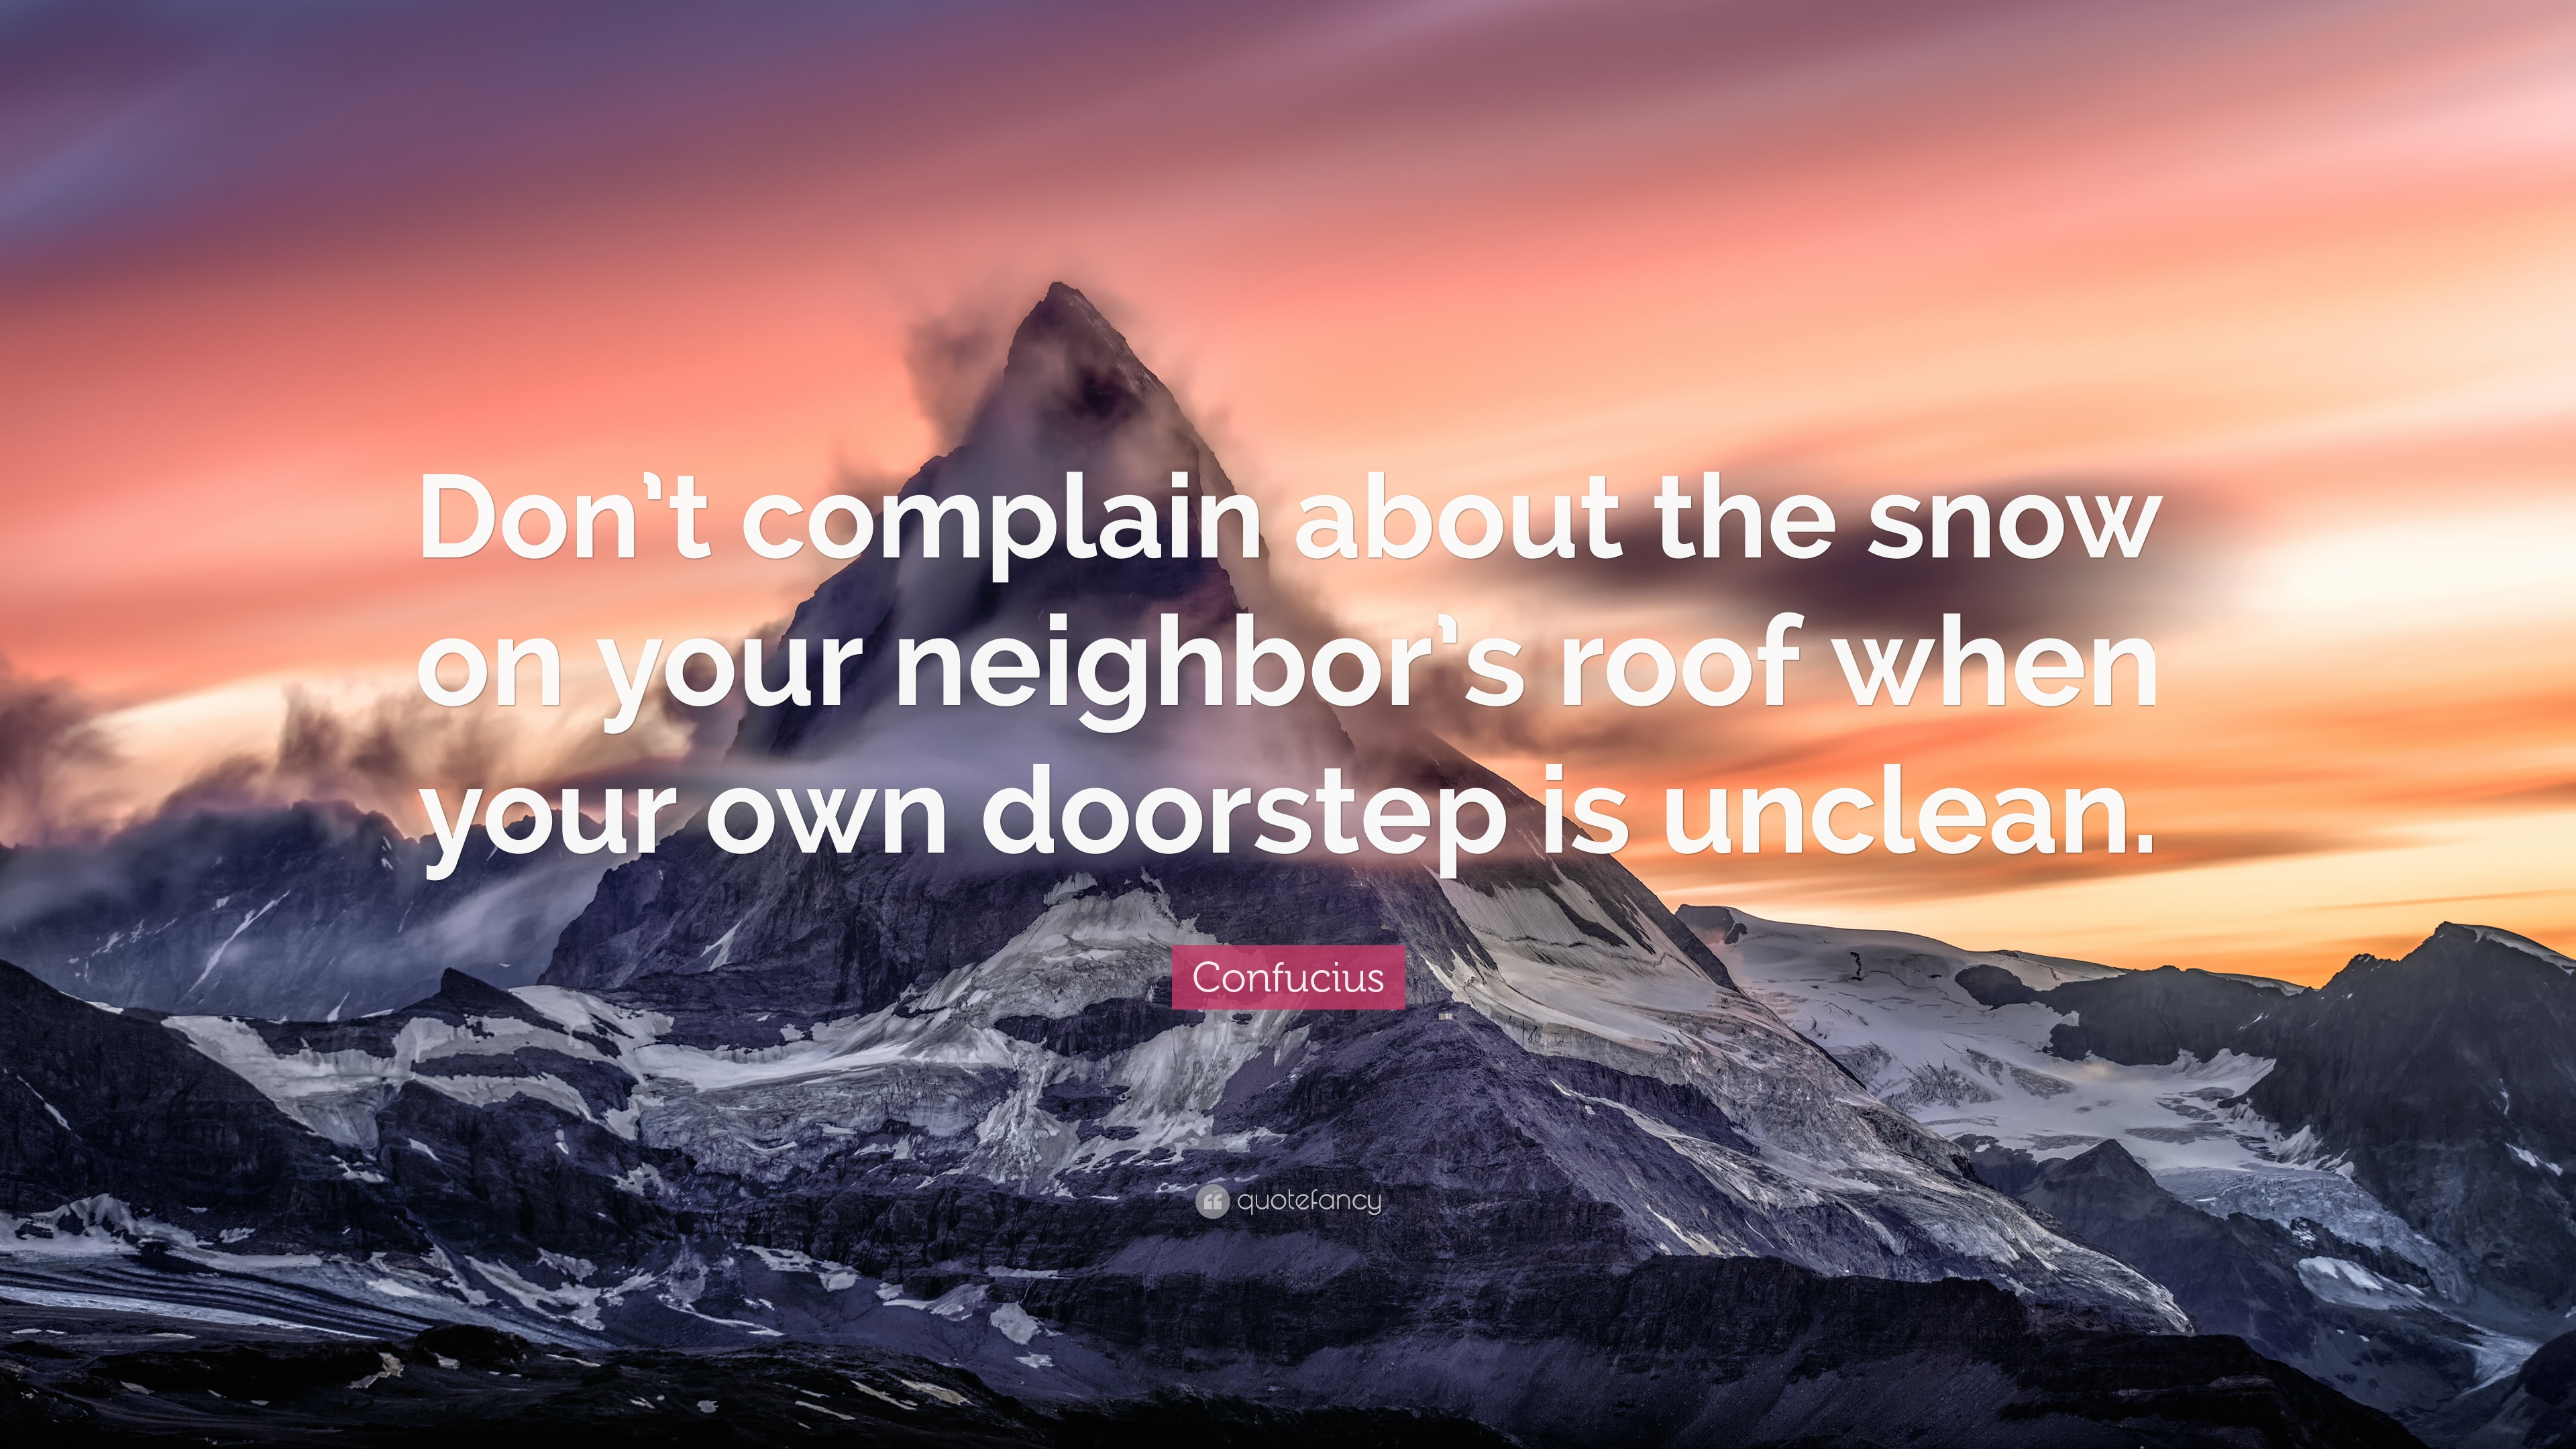 Confucius Quote u201cDonu0027t complain about the snow on your neighboru0027s roof when & Confucius Quote: u201cDonu0027t complain about the snow on your neighboru0027s ... pezcame.com